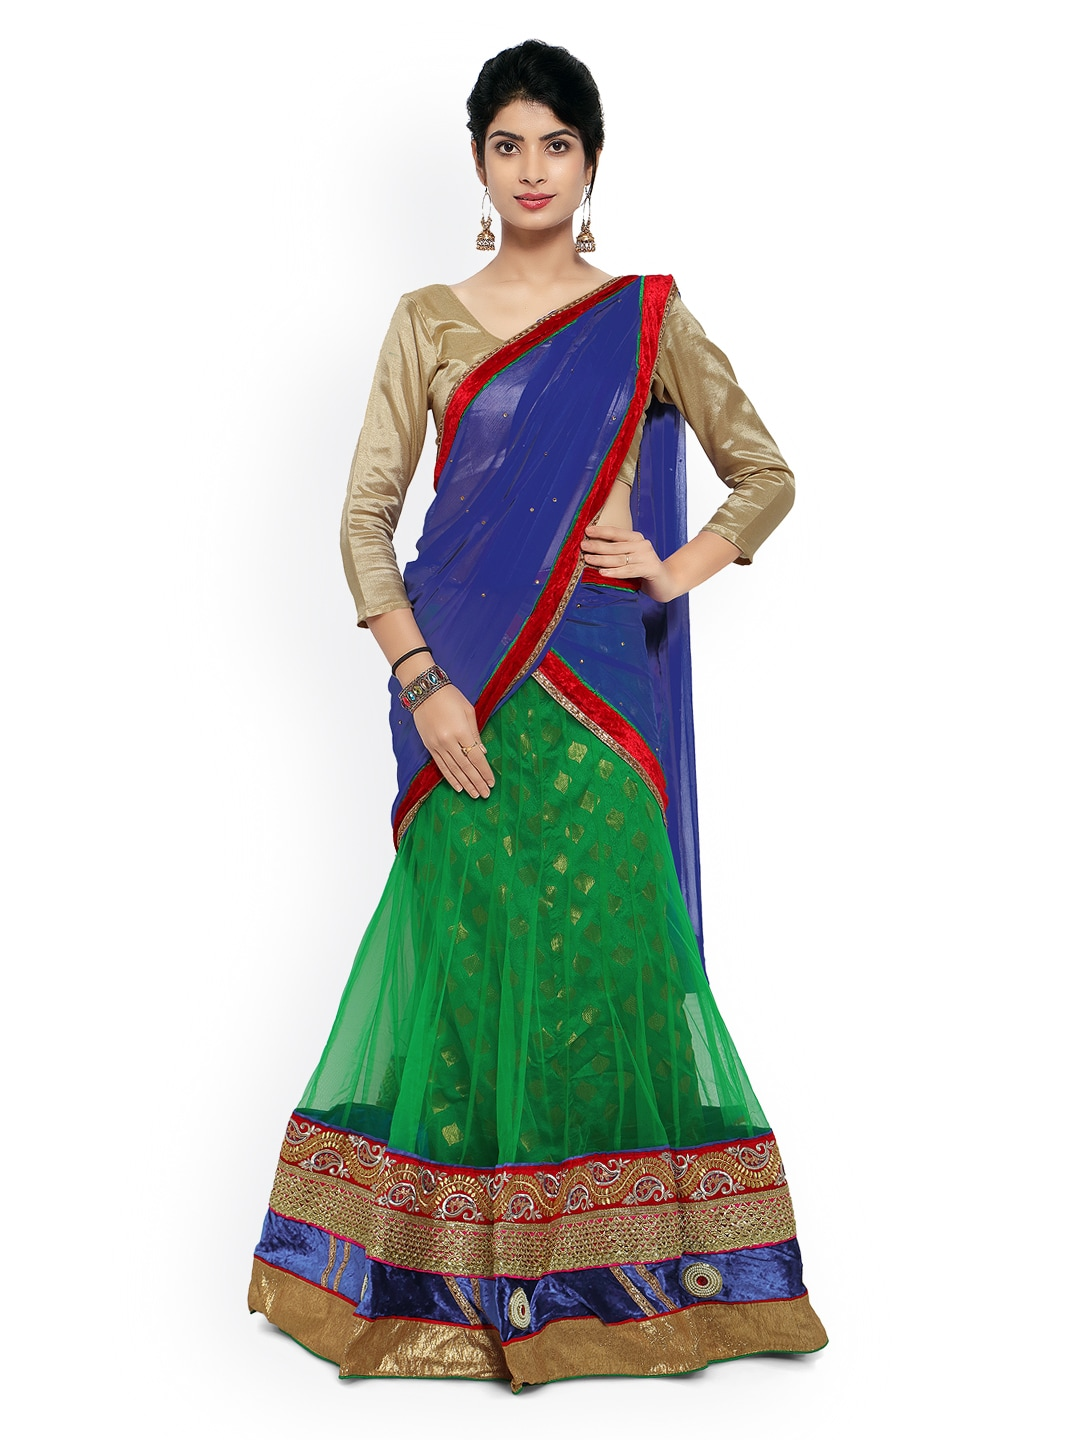 Touch Trends Green & Navy Net Semi-Stitched Lehenga Choli Material with Dupatta image